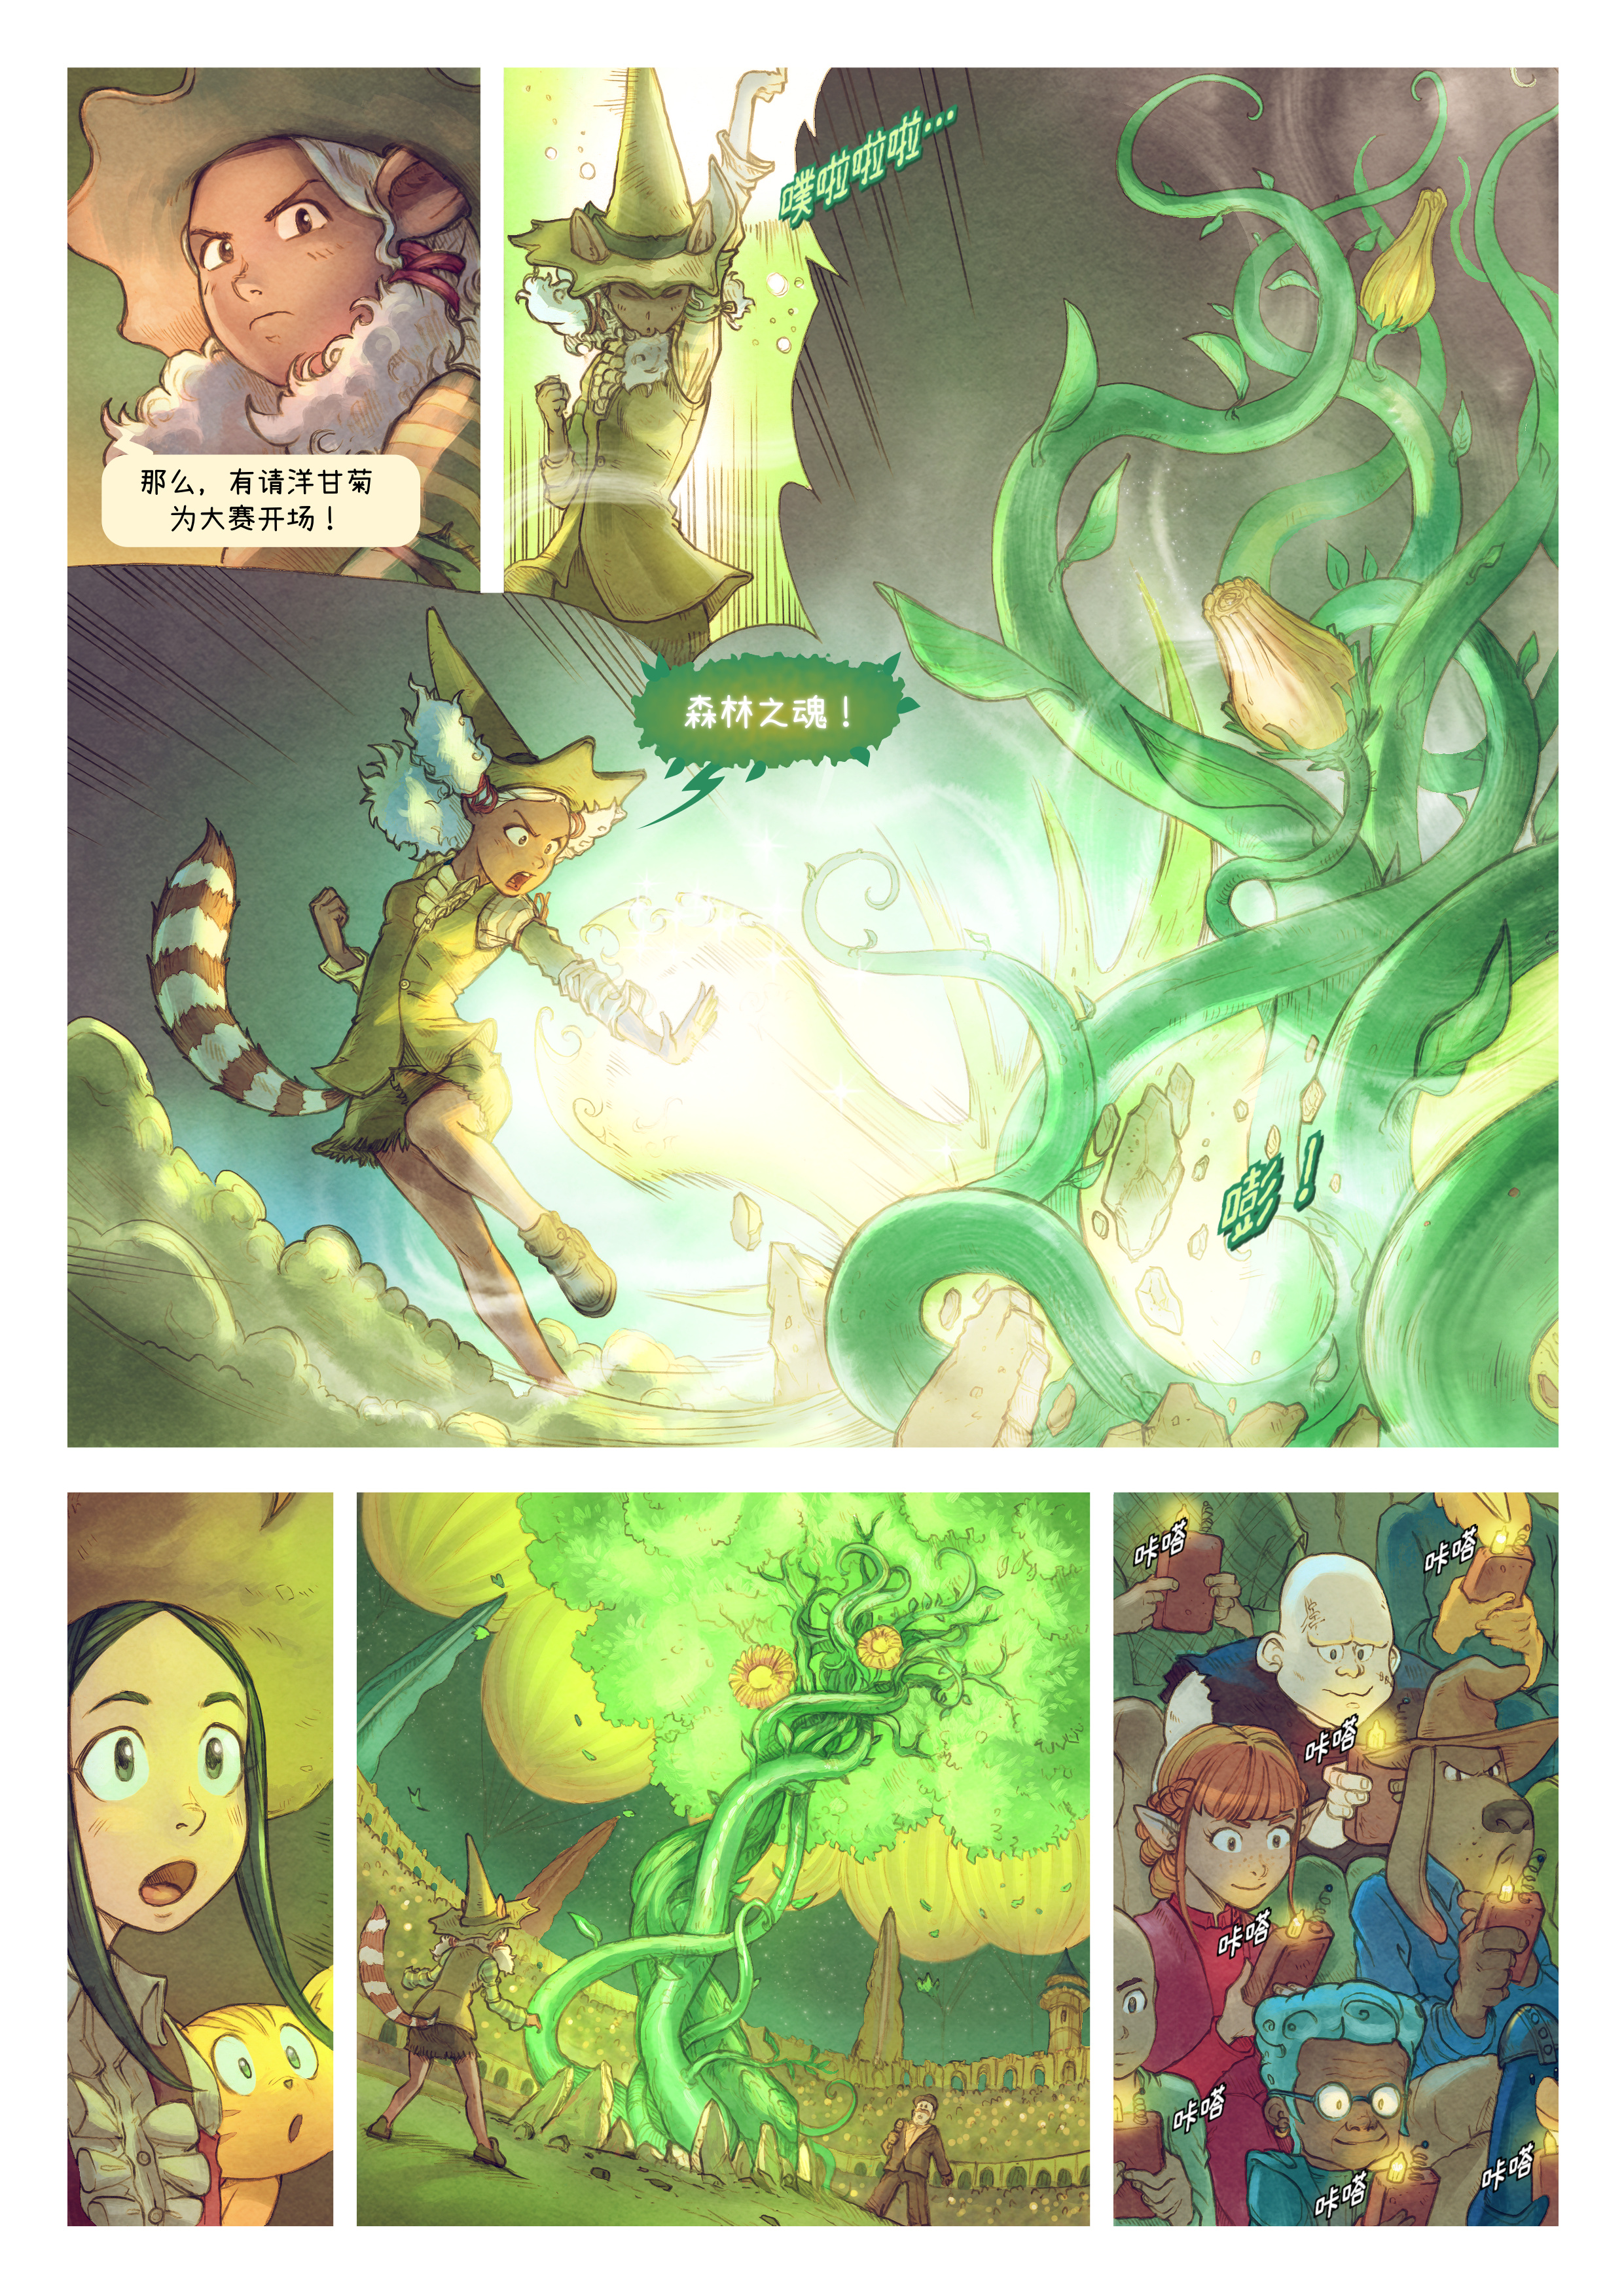 A webcomic page of Pepper&Carrot, 漫画全集 22 [cn], 页面 5